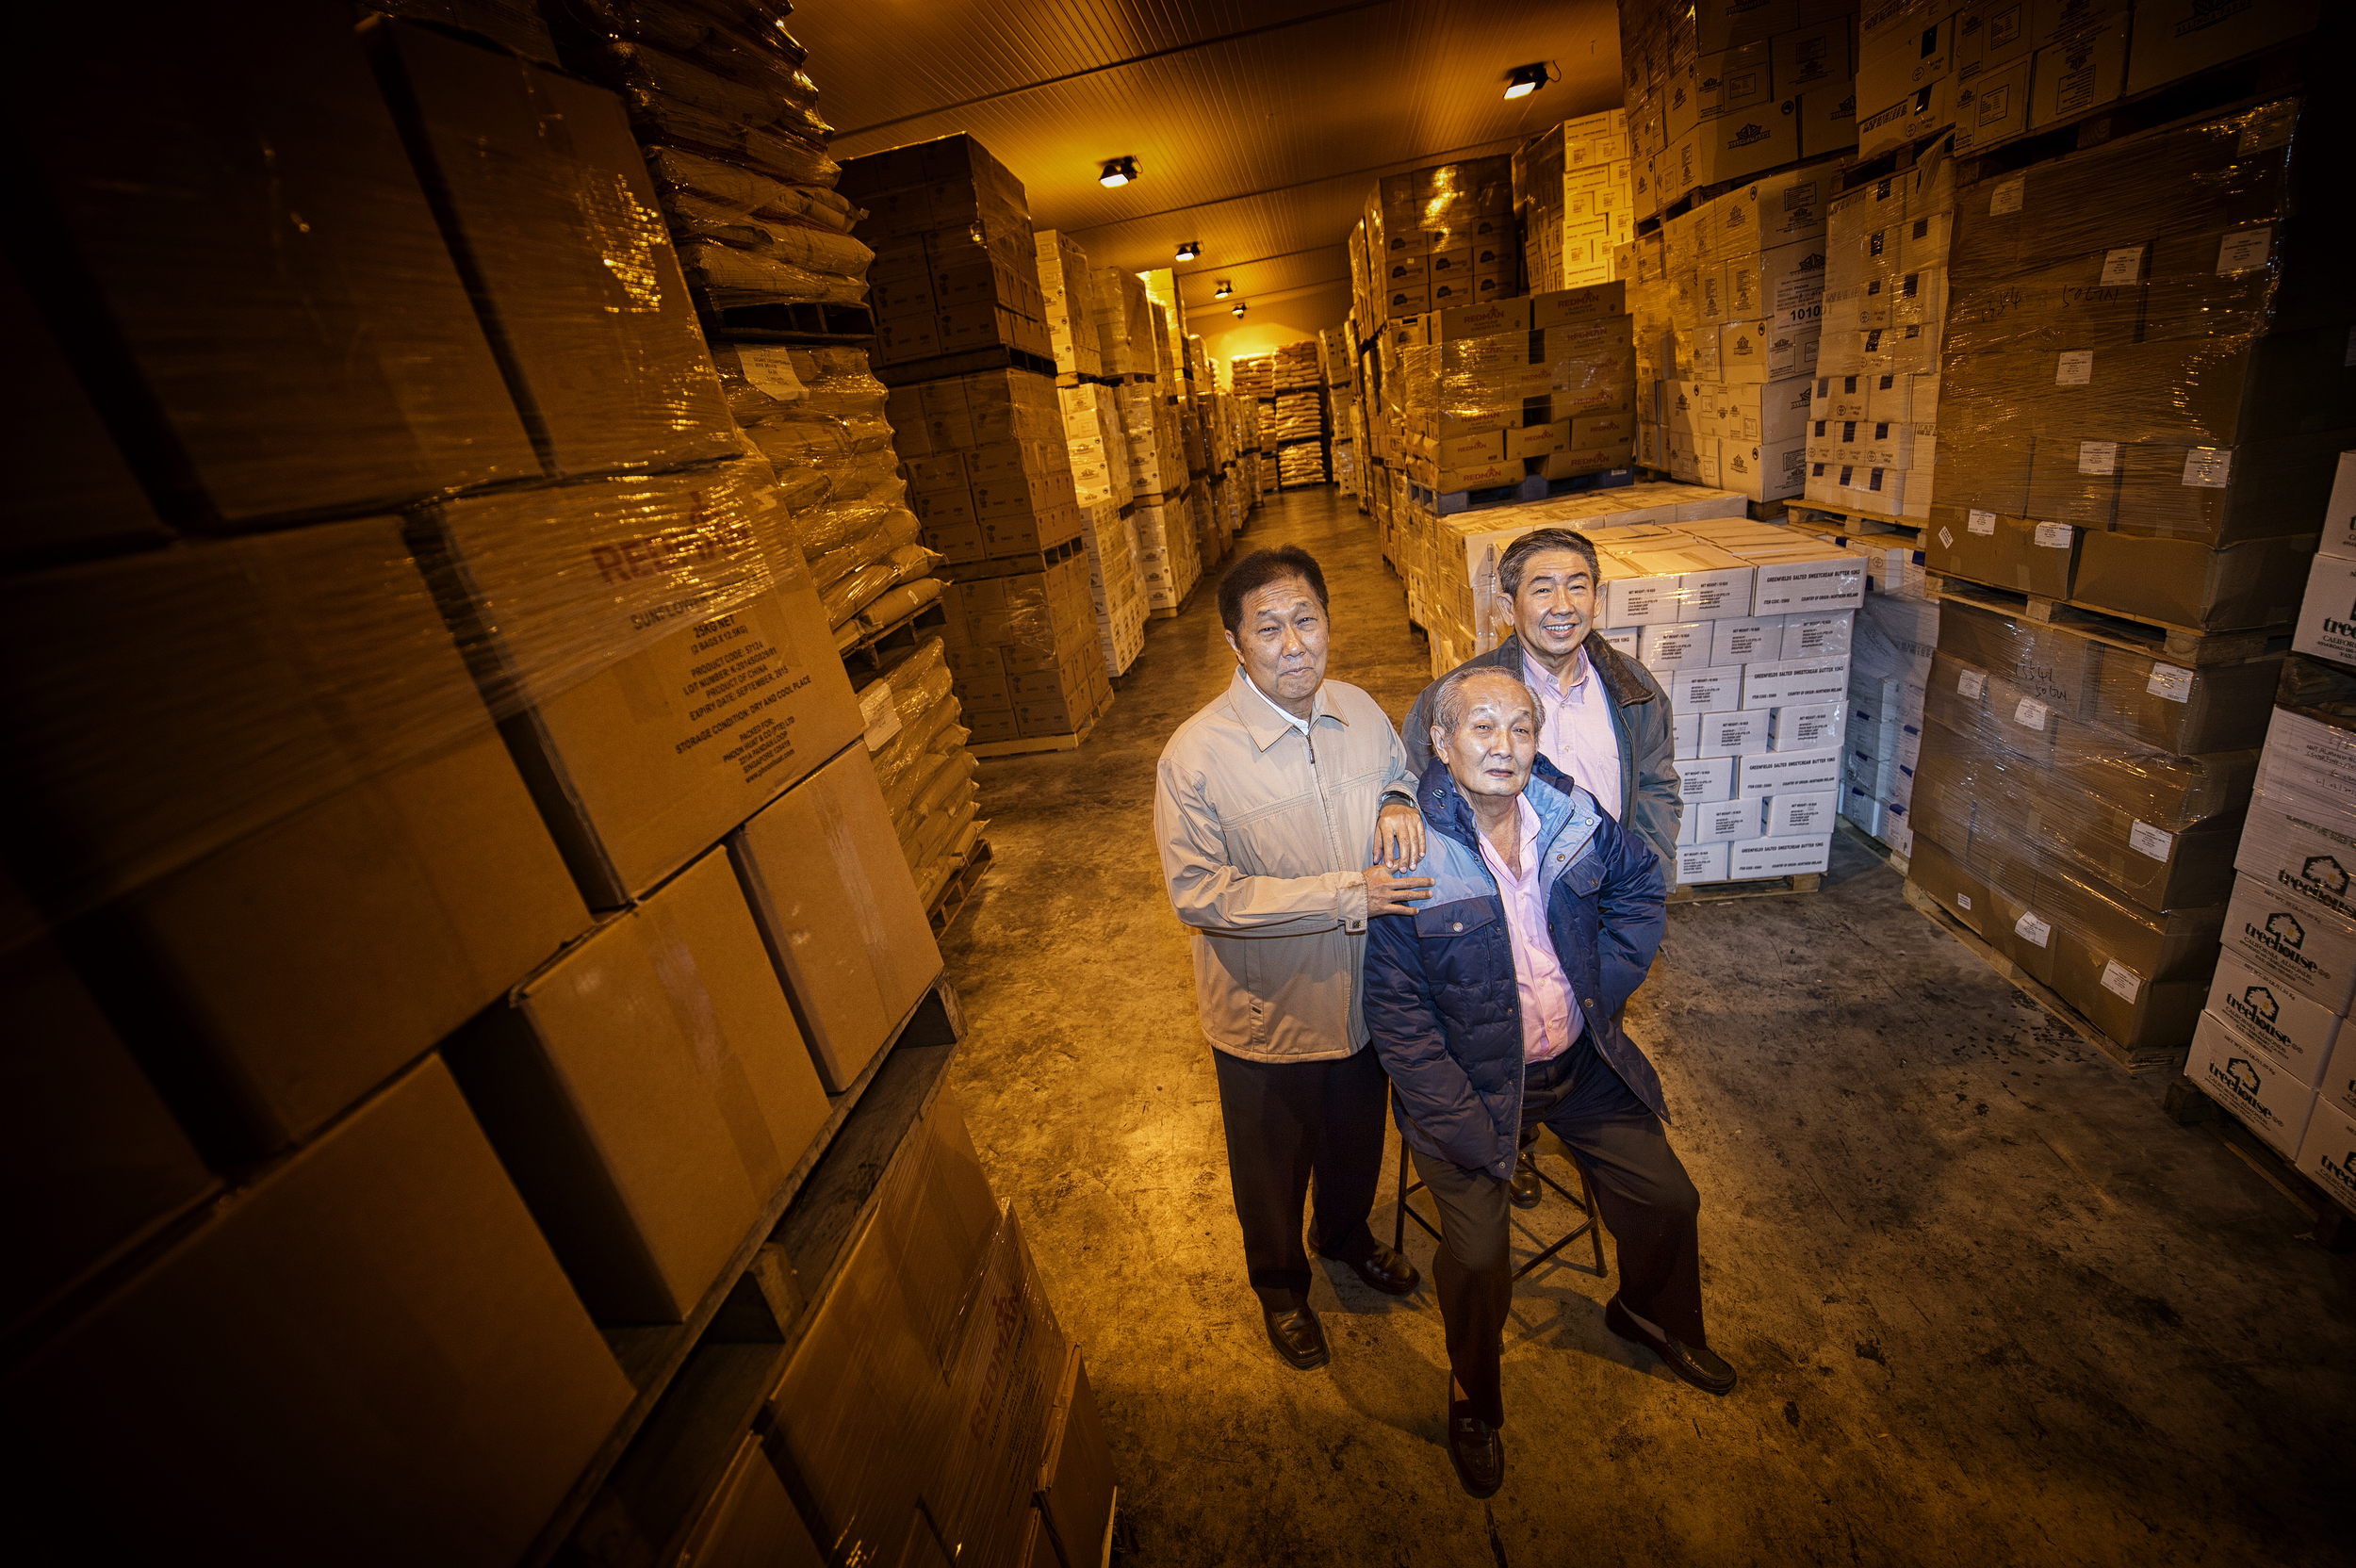 All in the family business are(L-R) Wong Chen Liong, brother Wong Chen Keng and nephew John Wong, who help run Phoon Huat. The company, best known for its Redman syrups in its early days, has expanded its product range to include marzipan from Norway and glazing gel from Belgium.